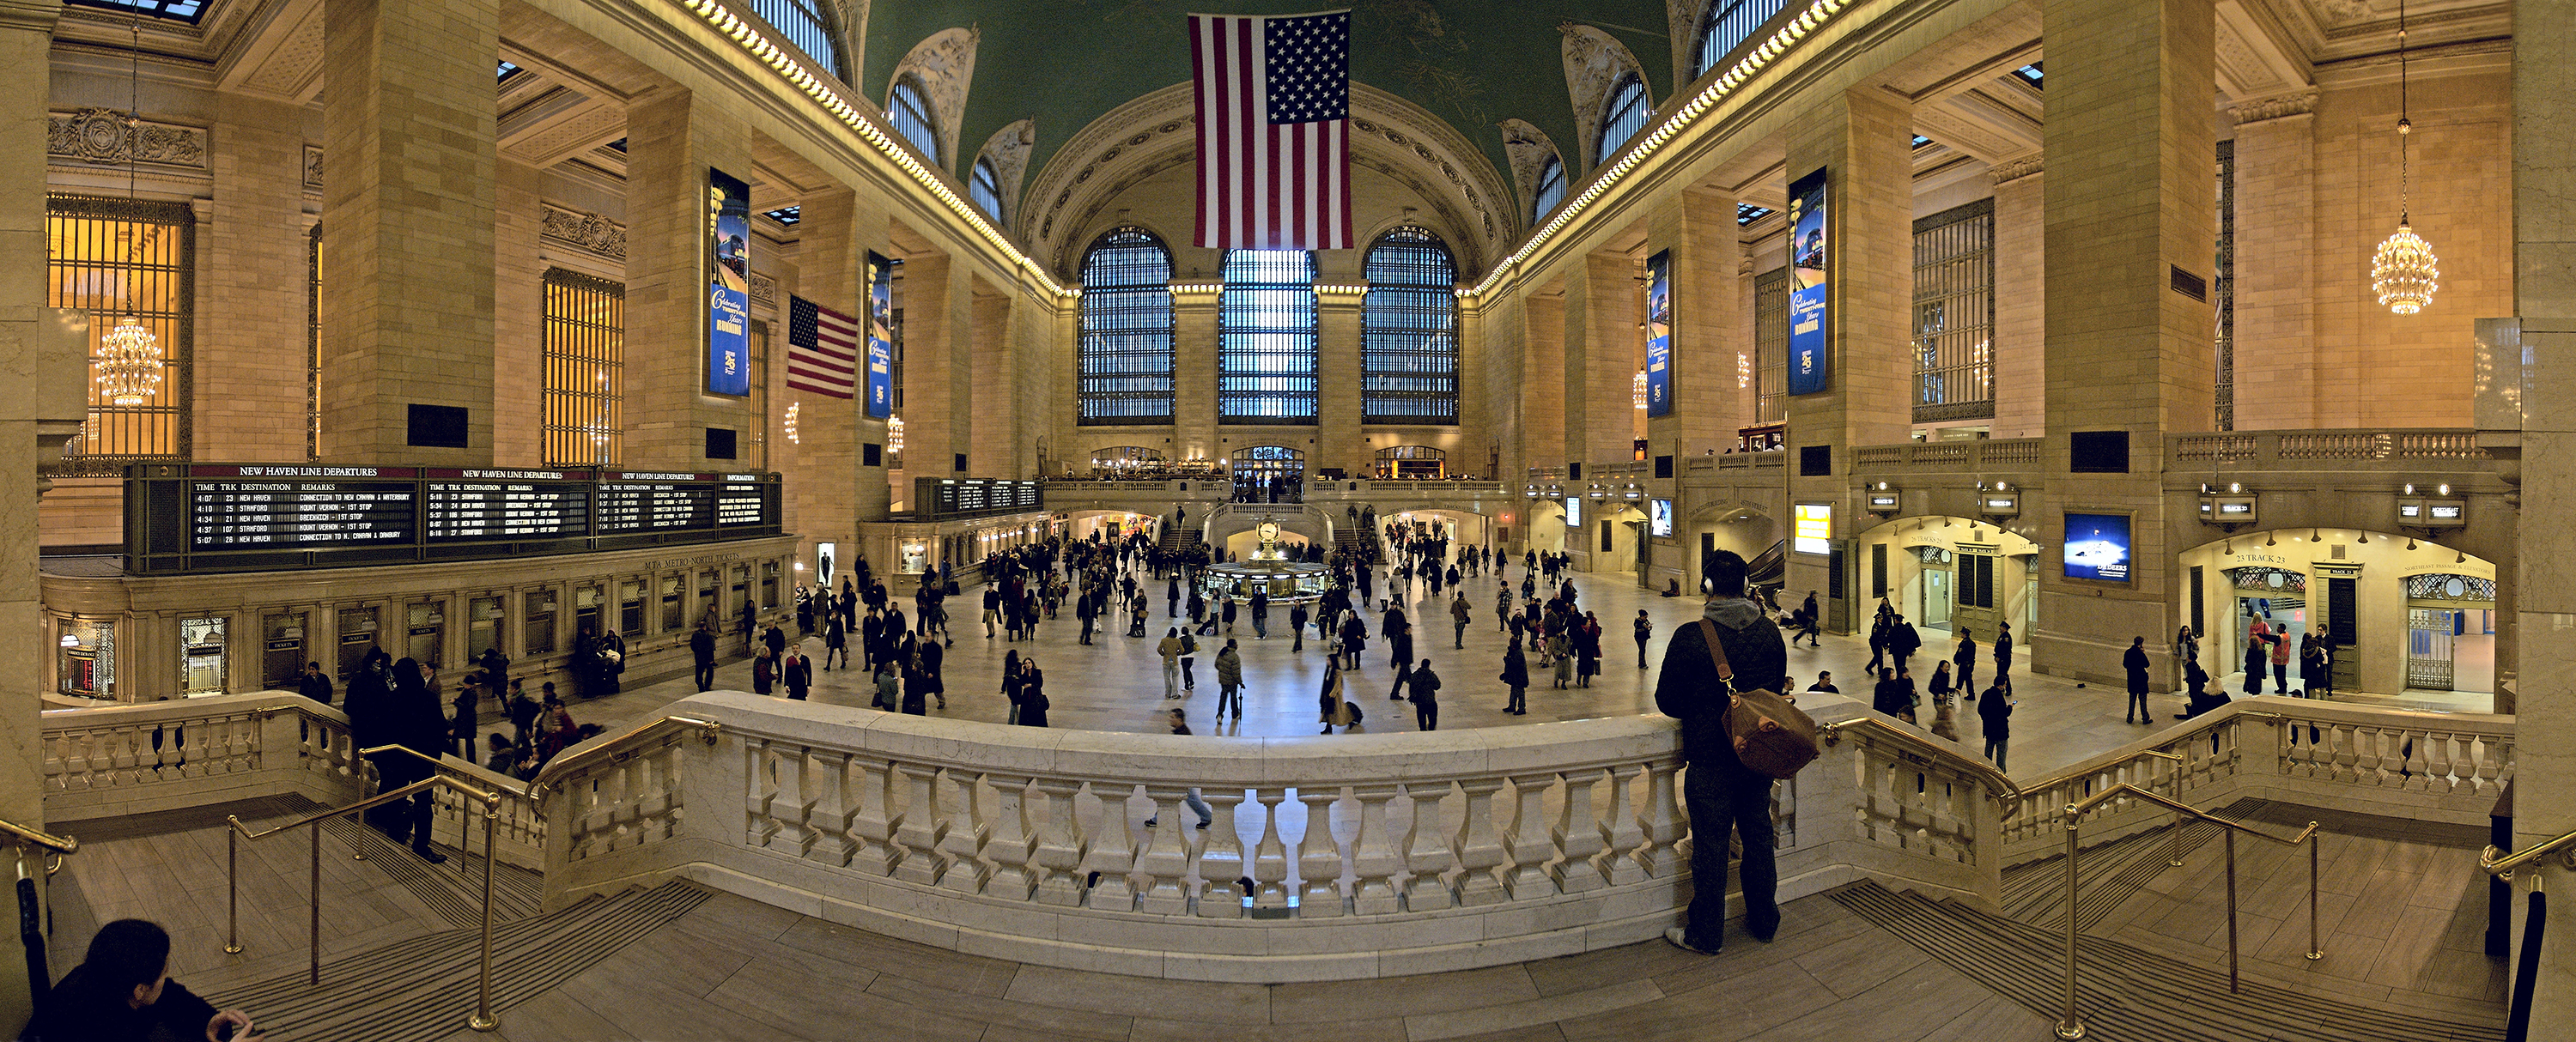 grand-central-terminal15x42©DonKellogg2004